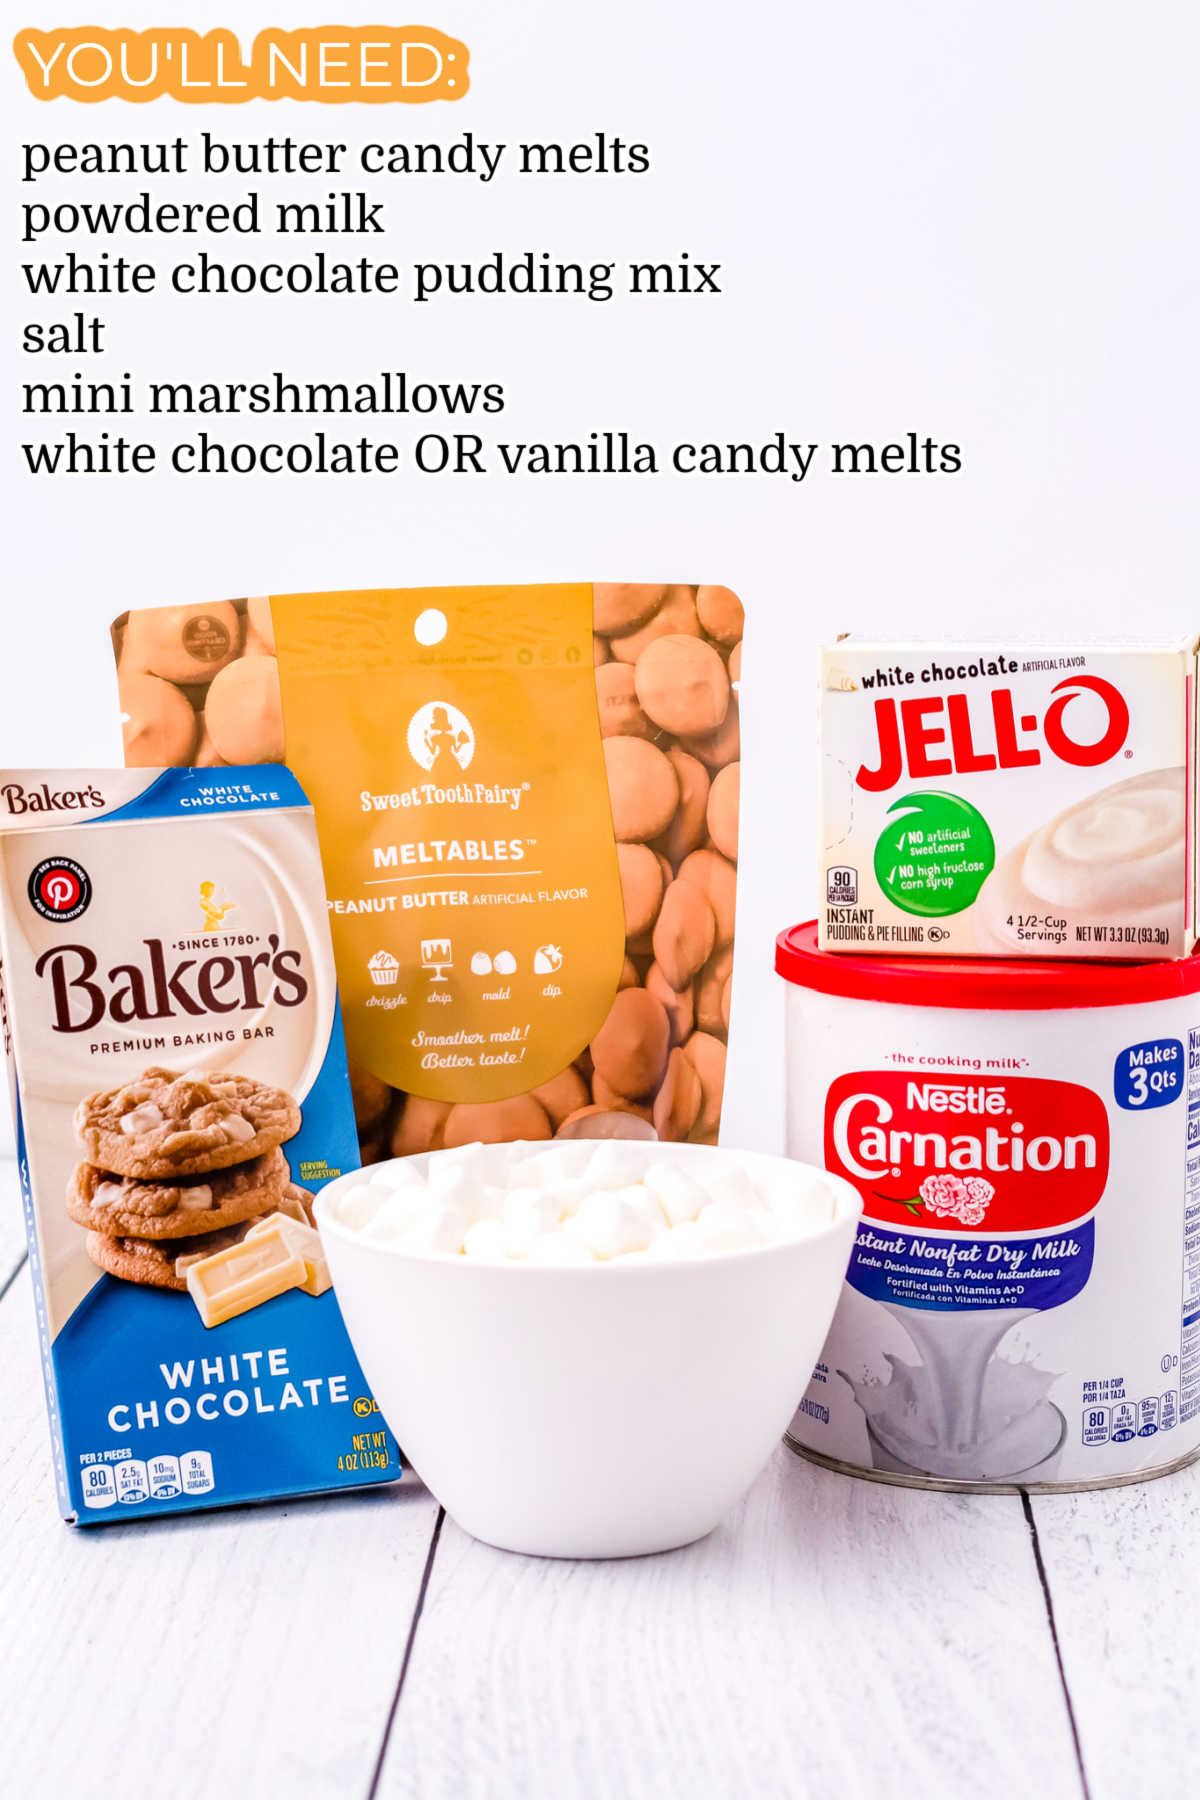 All of the ingredients needed to make Peanut Butter White Hot Chocolate Bombs.